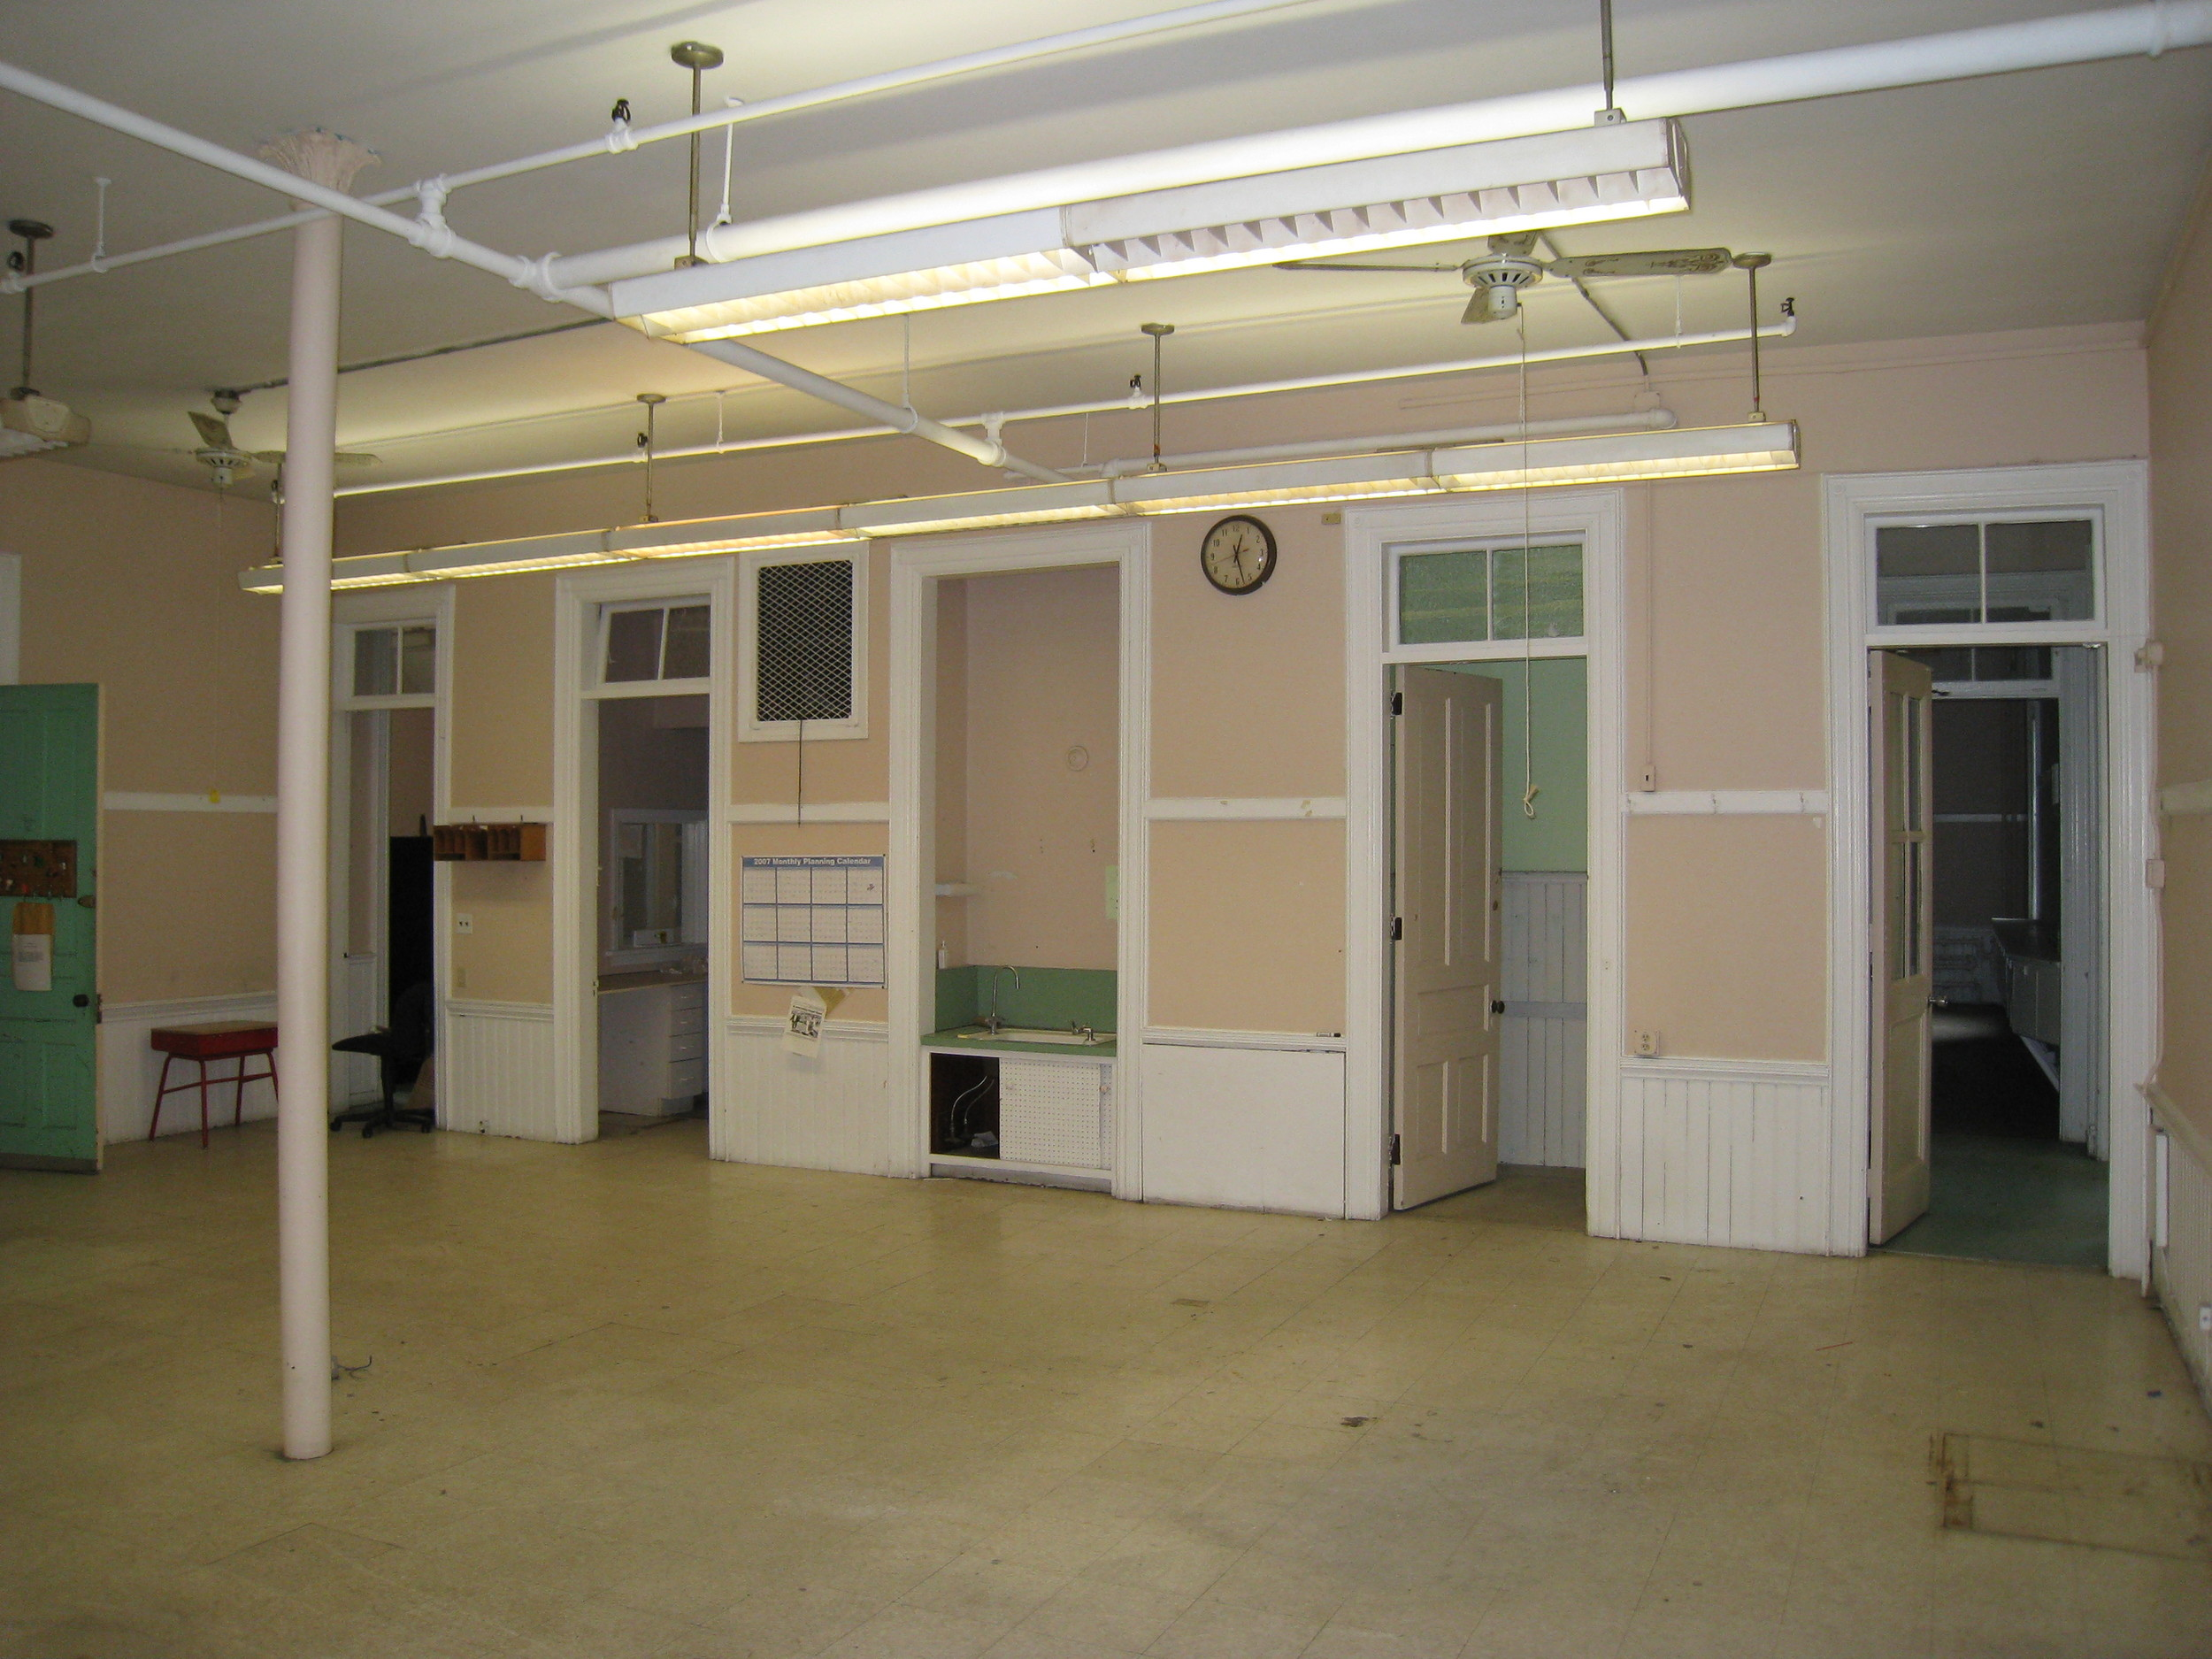 One of four original classrooms in the school. Photo credit: Providence Revolving Fund